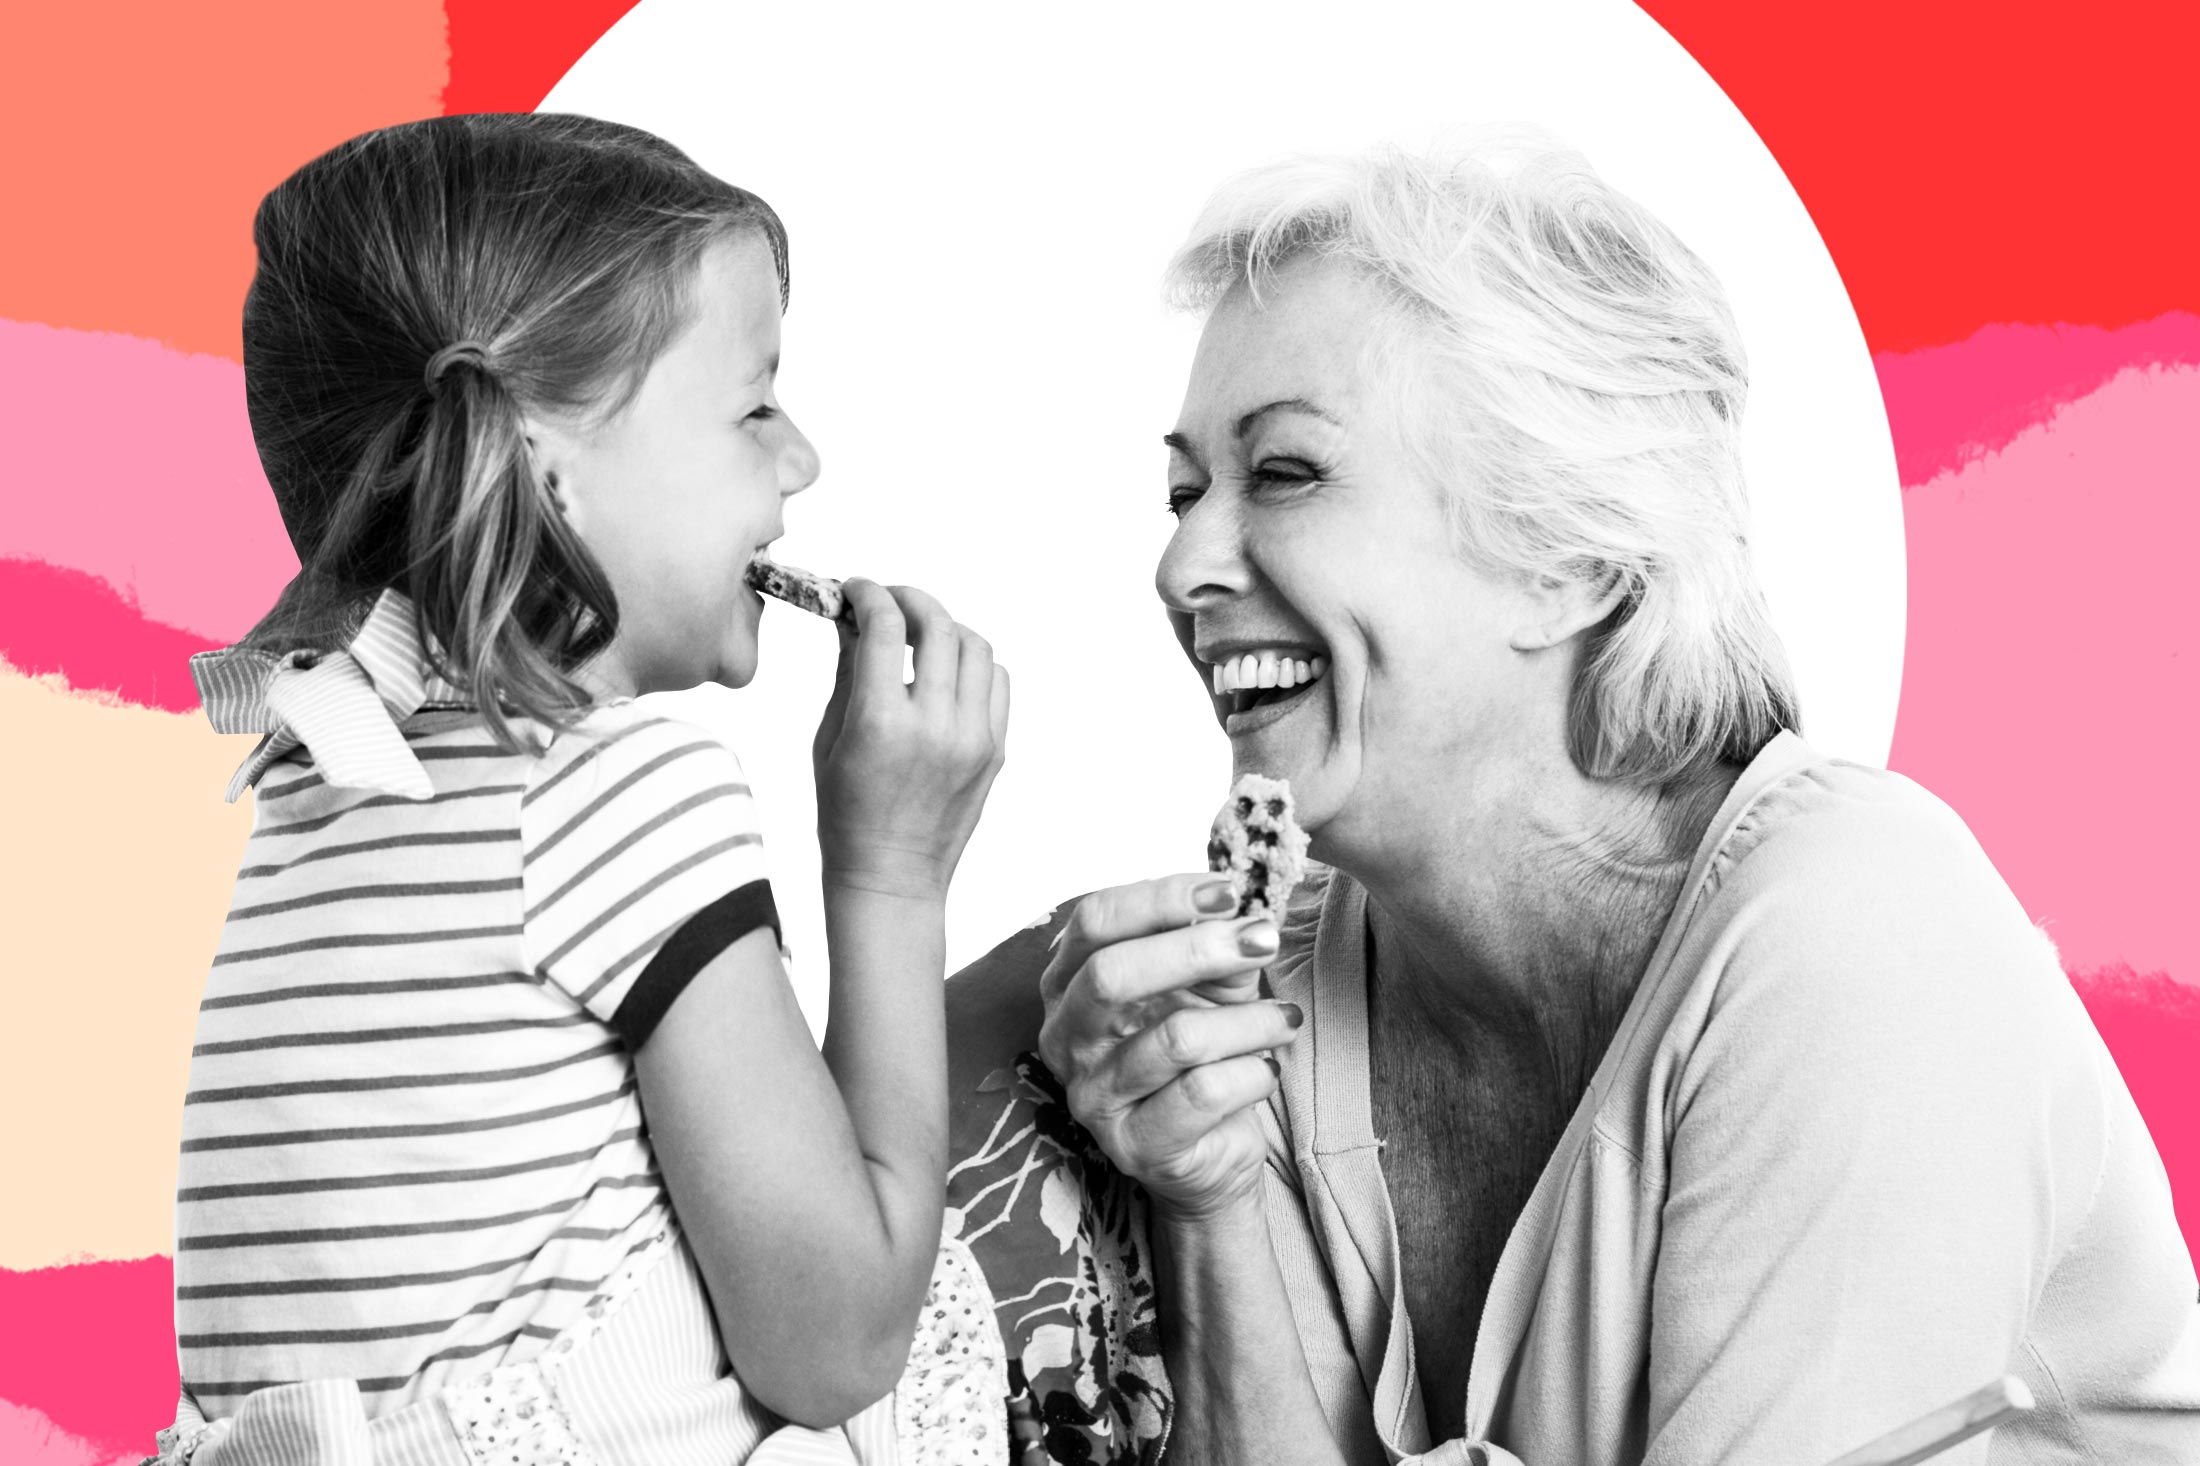 Photo illustration showing a toddler eating a cookie while a grandmother figure eats a cookie and grins at her.